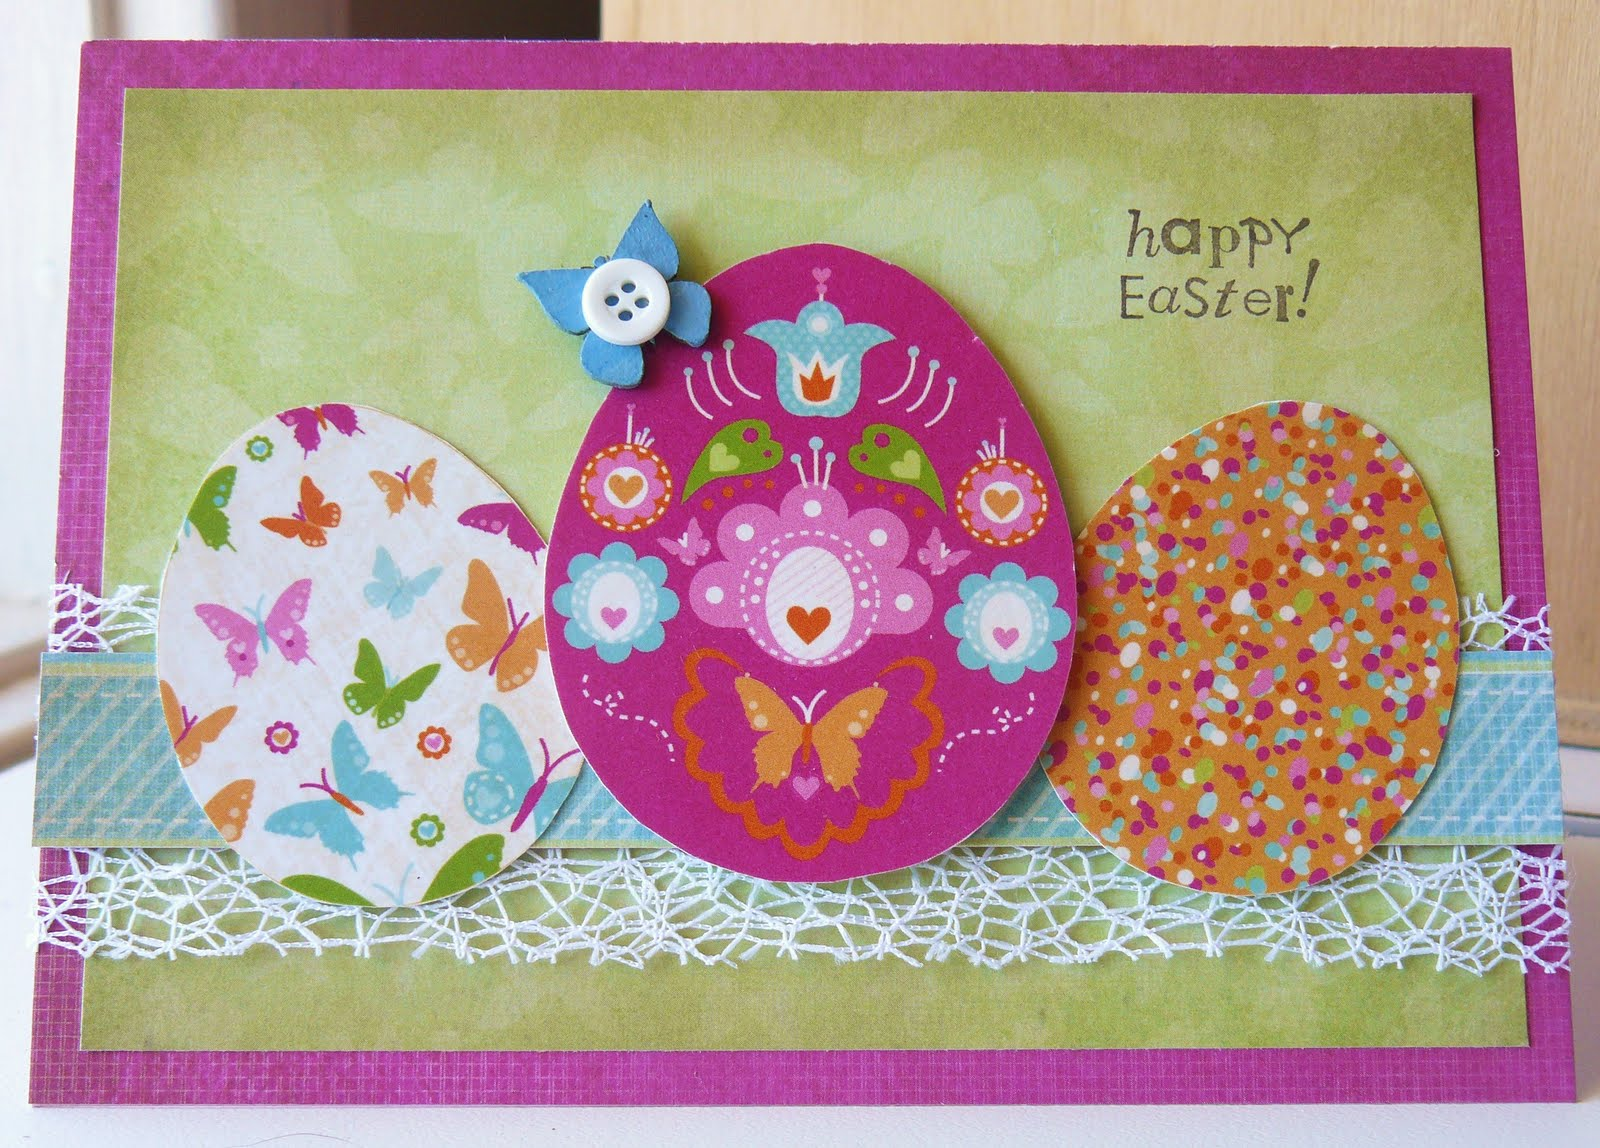 Displaying 19> Images For - Cute Easter Cards...: galleryhip.com/cute-easter-cards.html